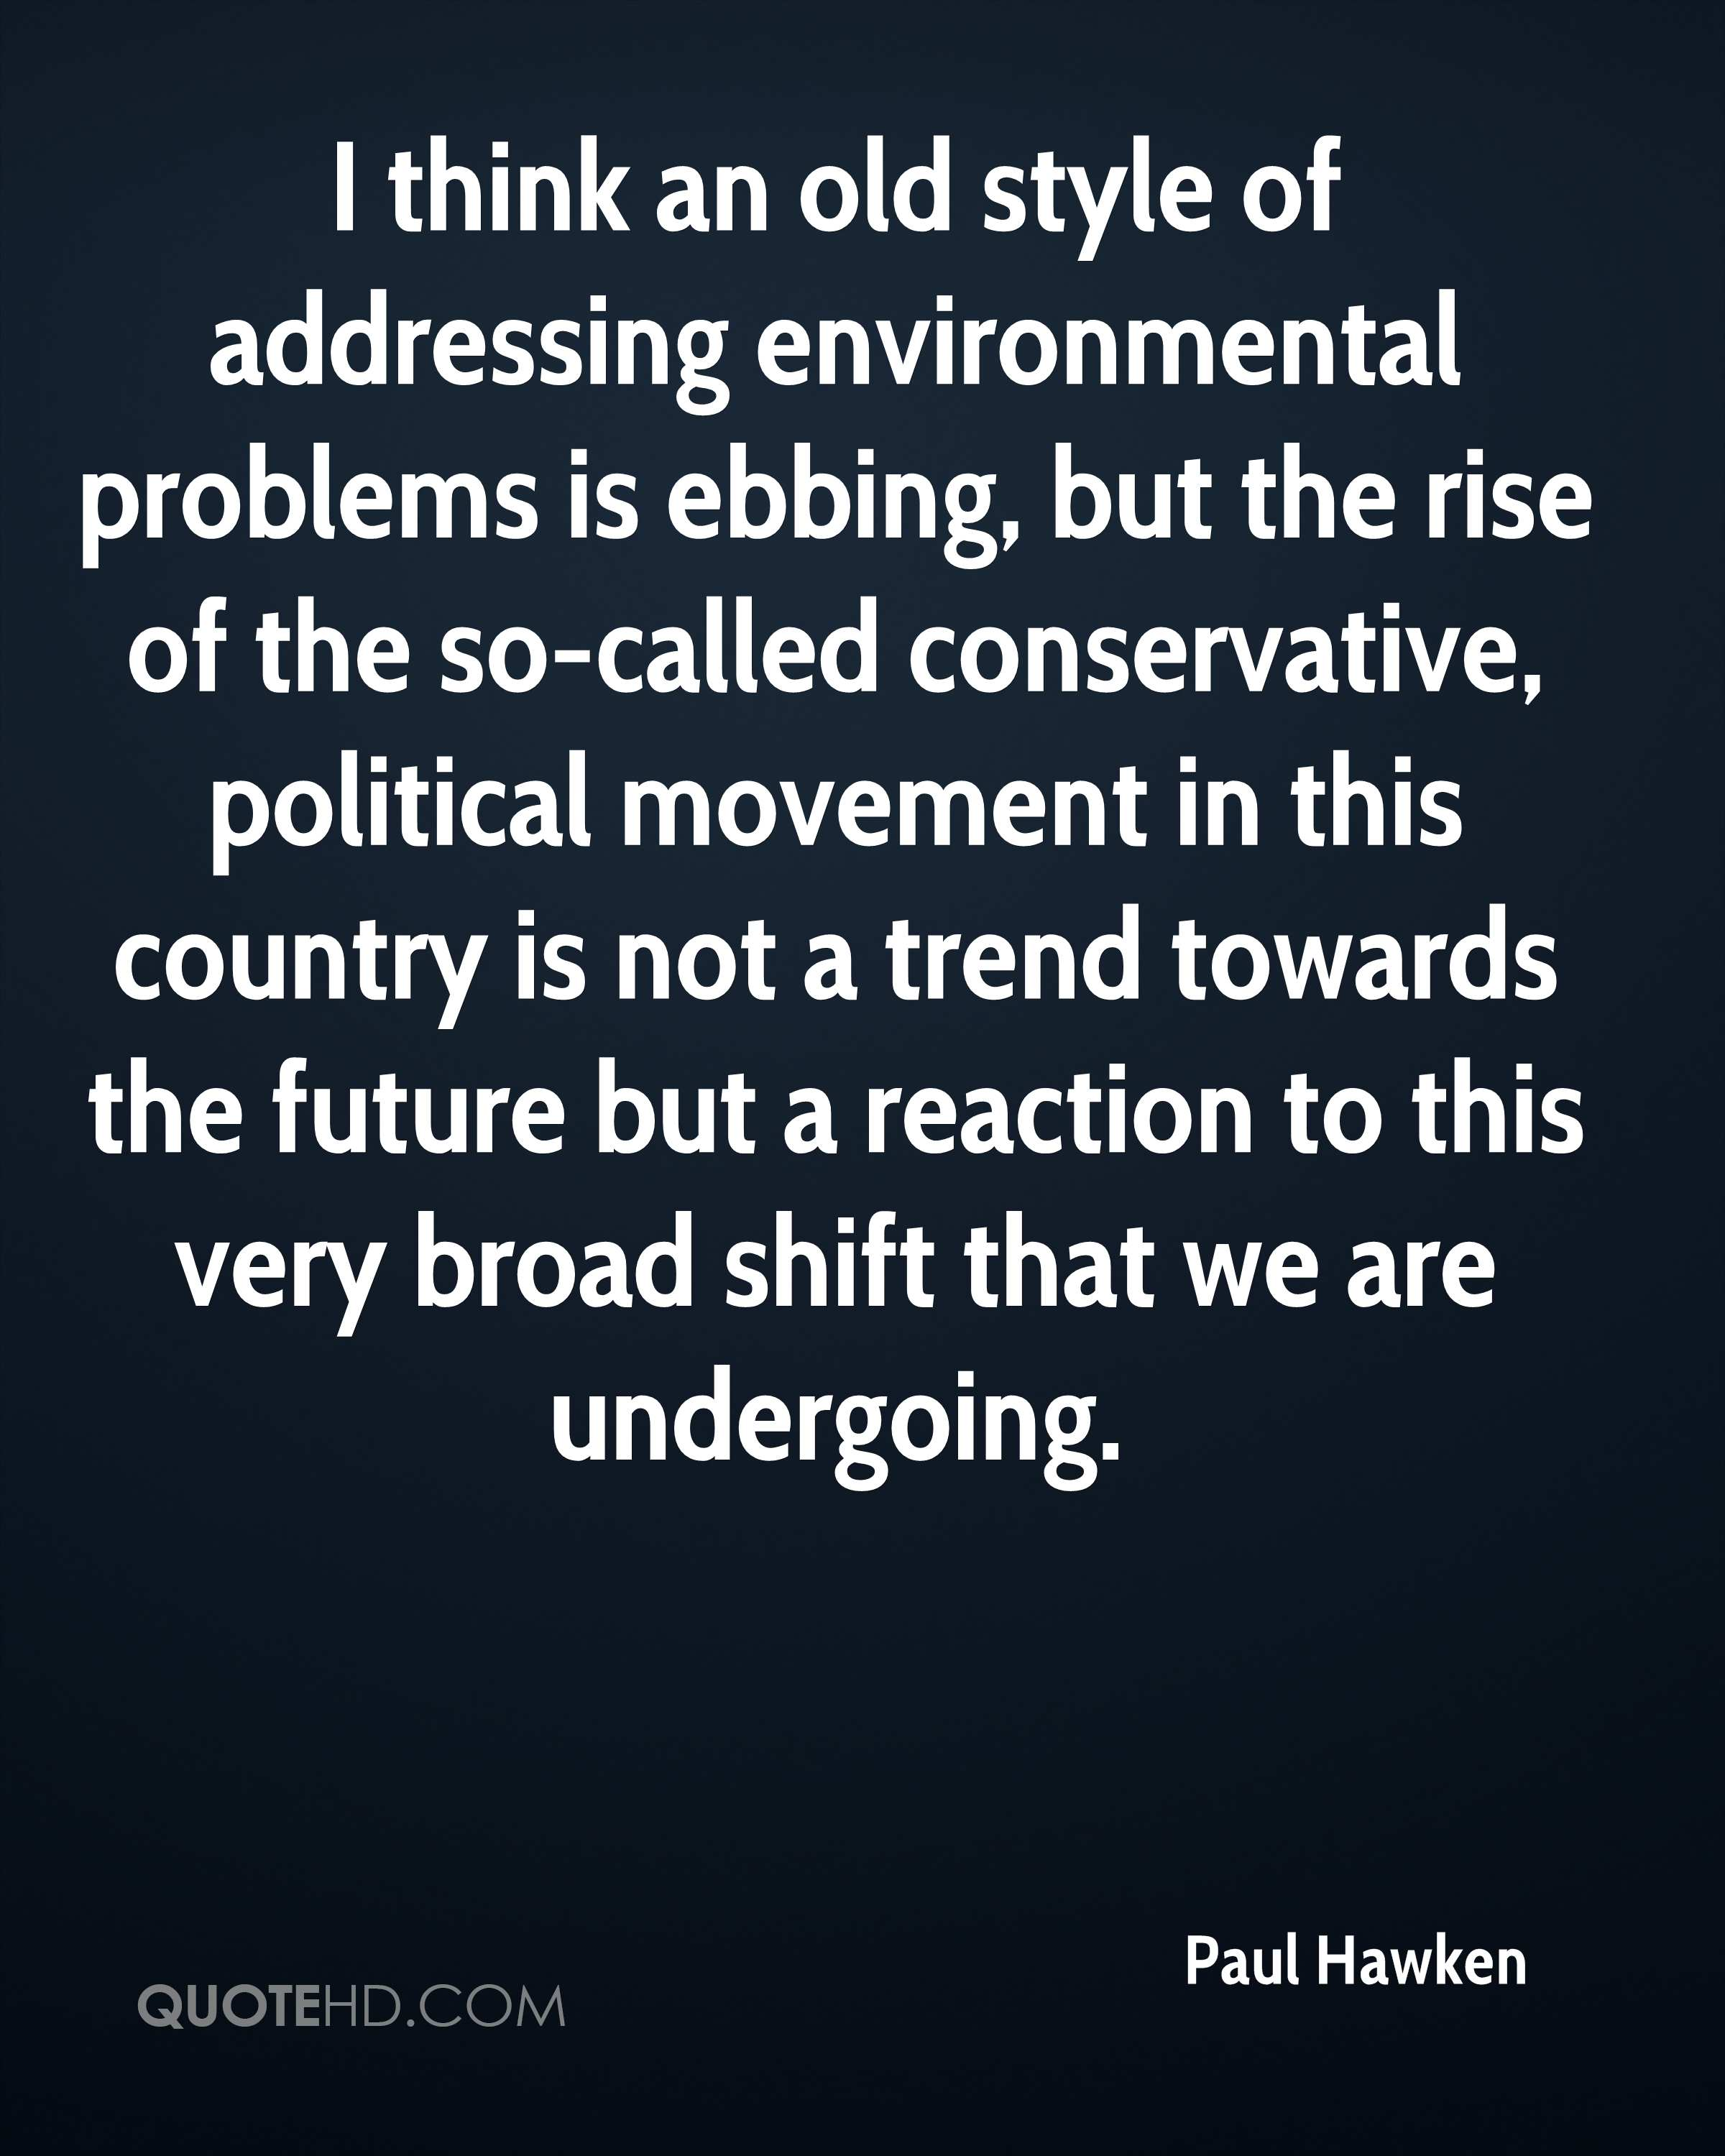 I think an old style of addressing environmental problems is ebbing, but the rise of the so-called conservative, political movement in this country is not a trend towards the future but a reaction to this very broad shift that we are undergoing.